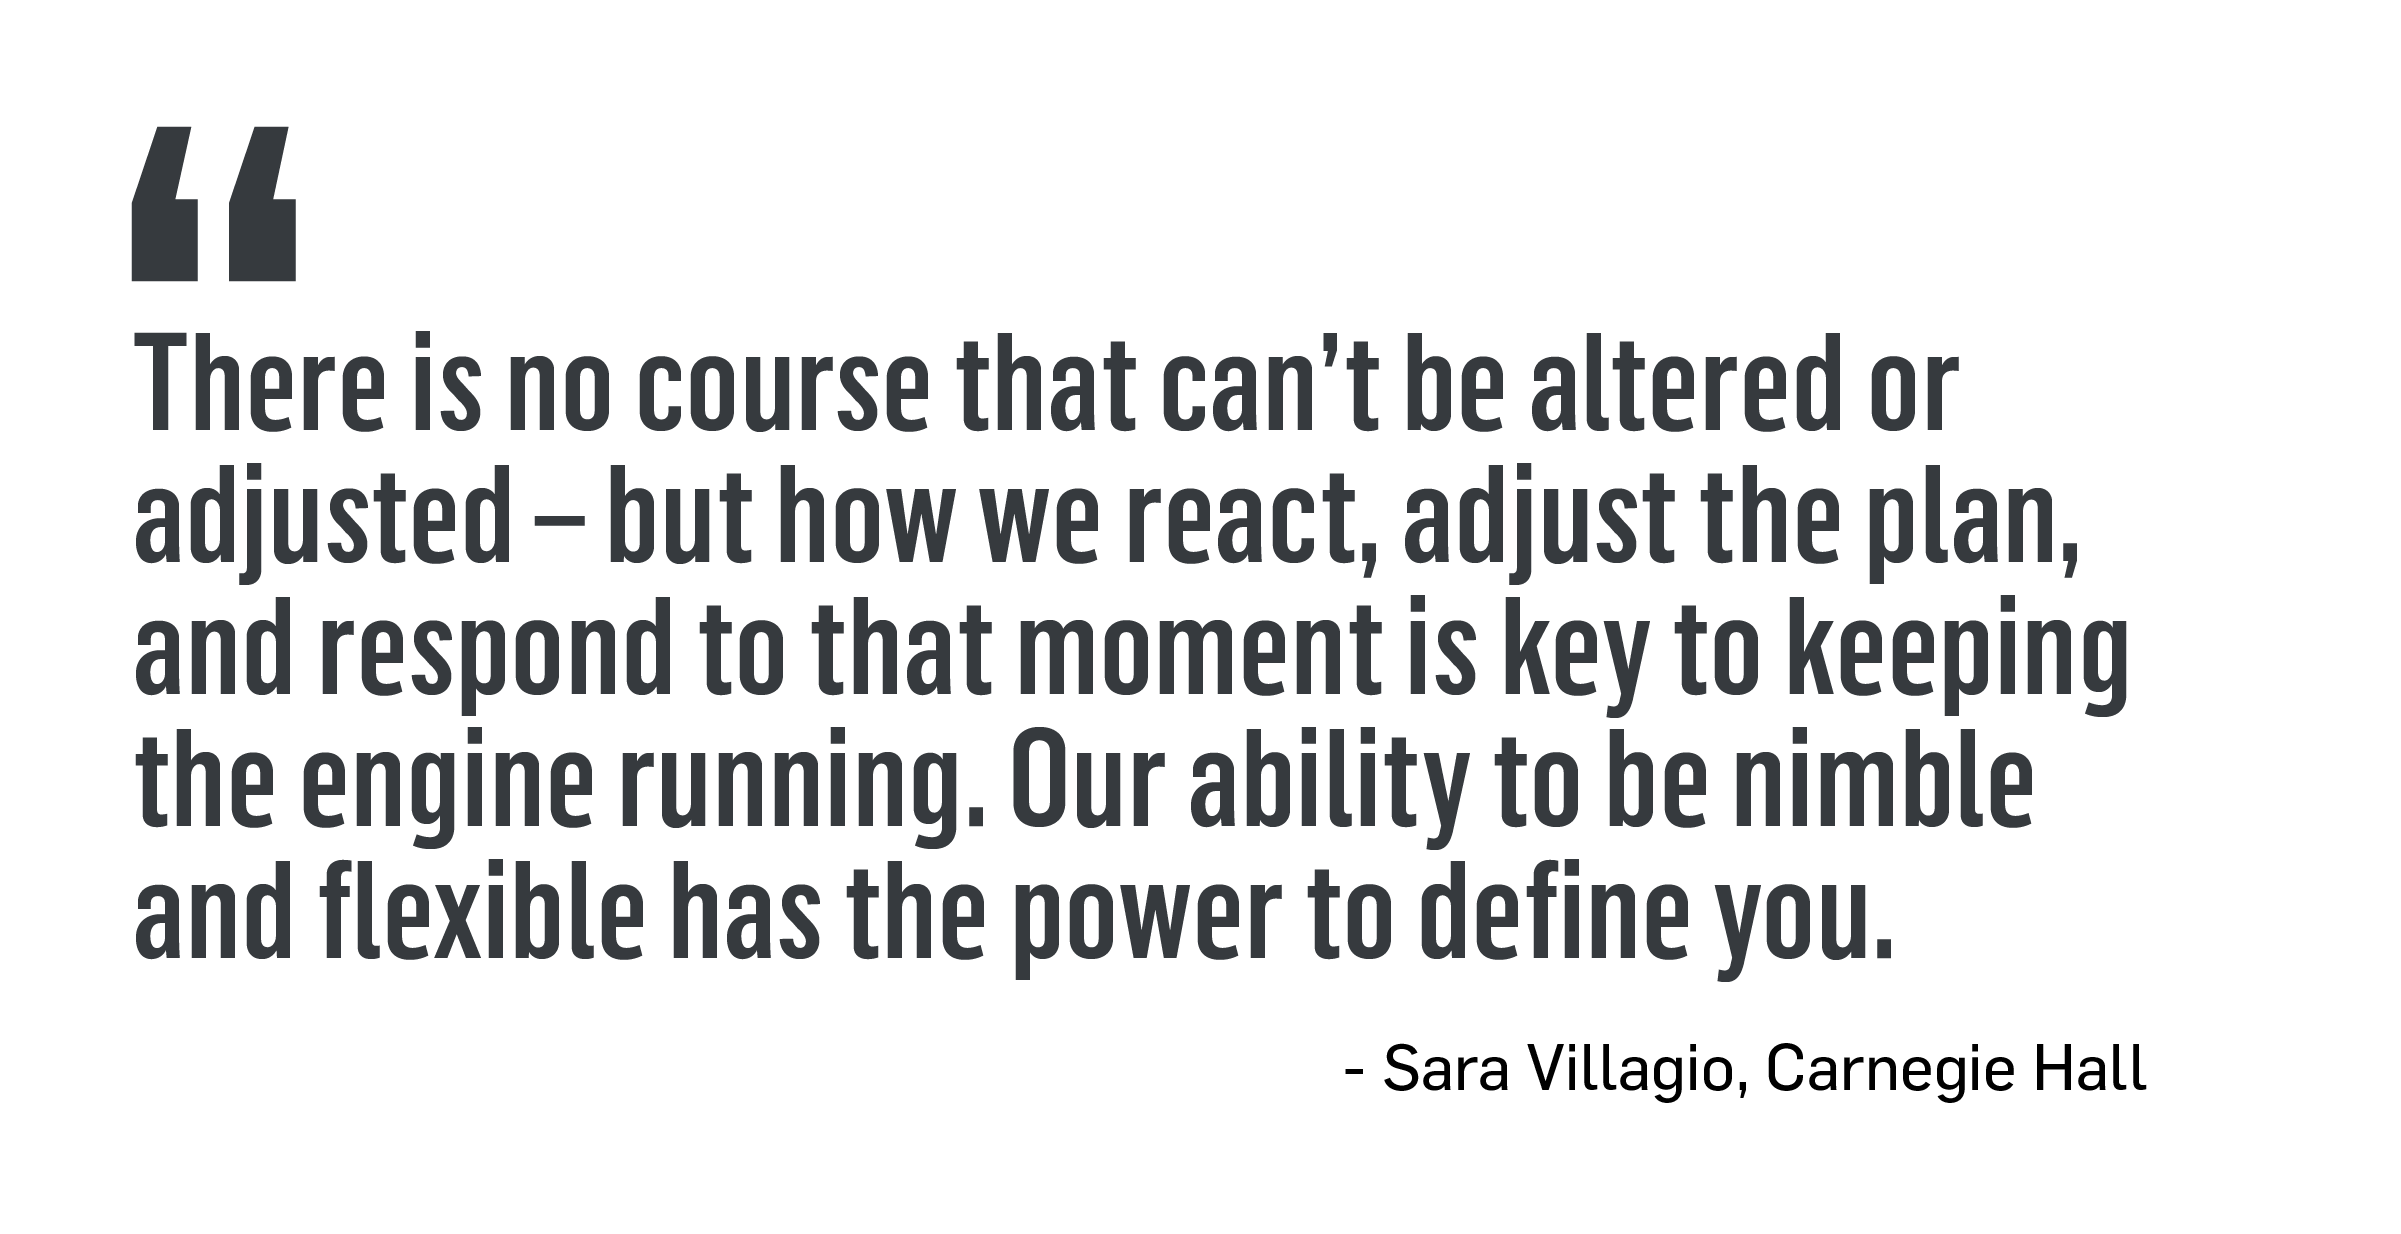 There is no course that can't be altered or adjusted - but how we react, adjust the plan, and respond to that moment is key to keeping the engine running. Our ability to be nimble and flexible has the power to define you. -Sara Villagio, Carnegie Hall